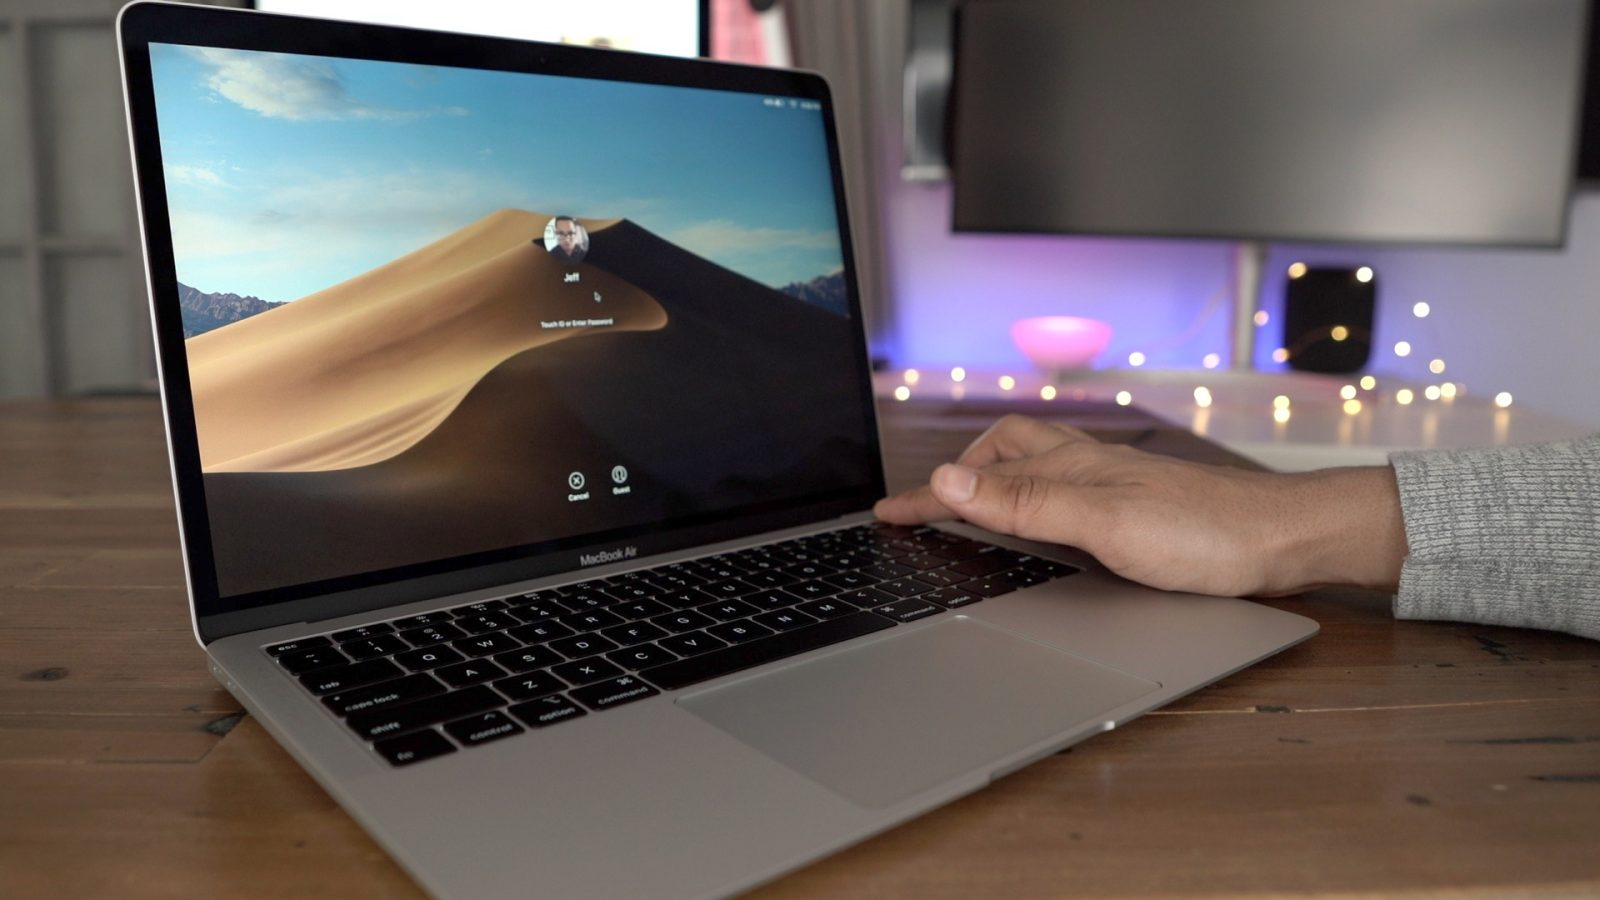 Apple releases 2019 Retina MacBook Air with True Tone display